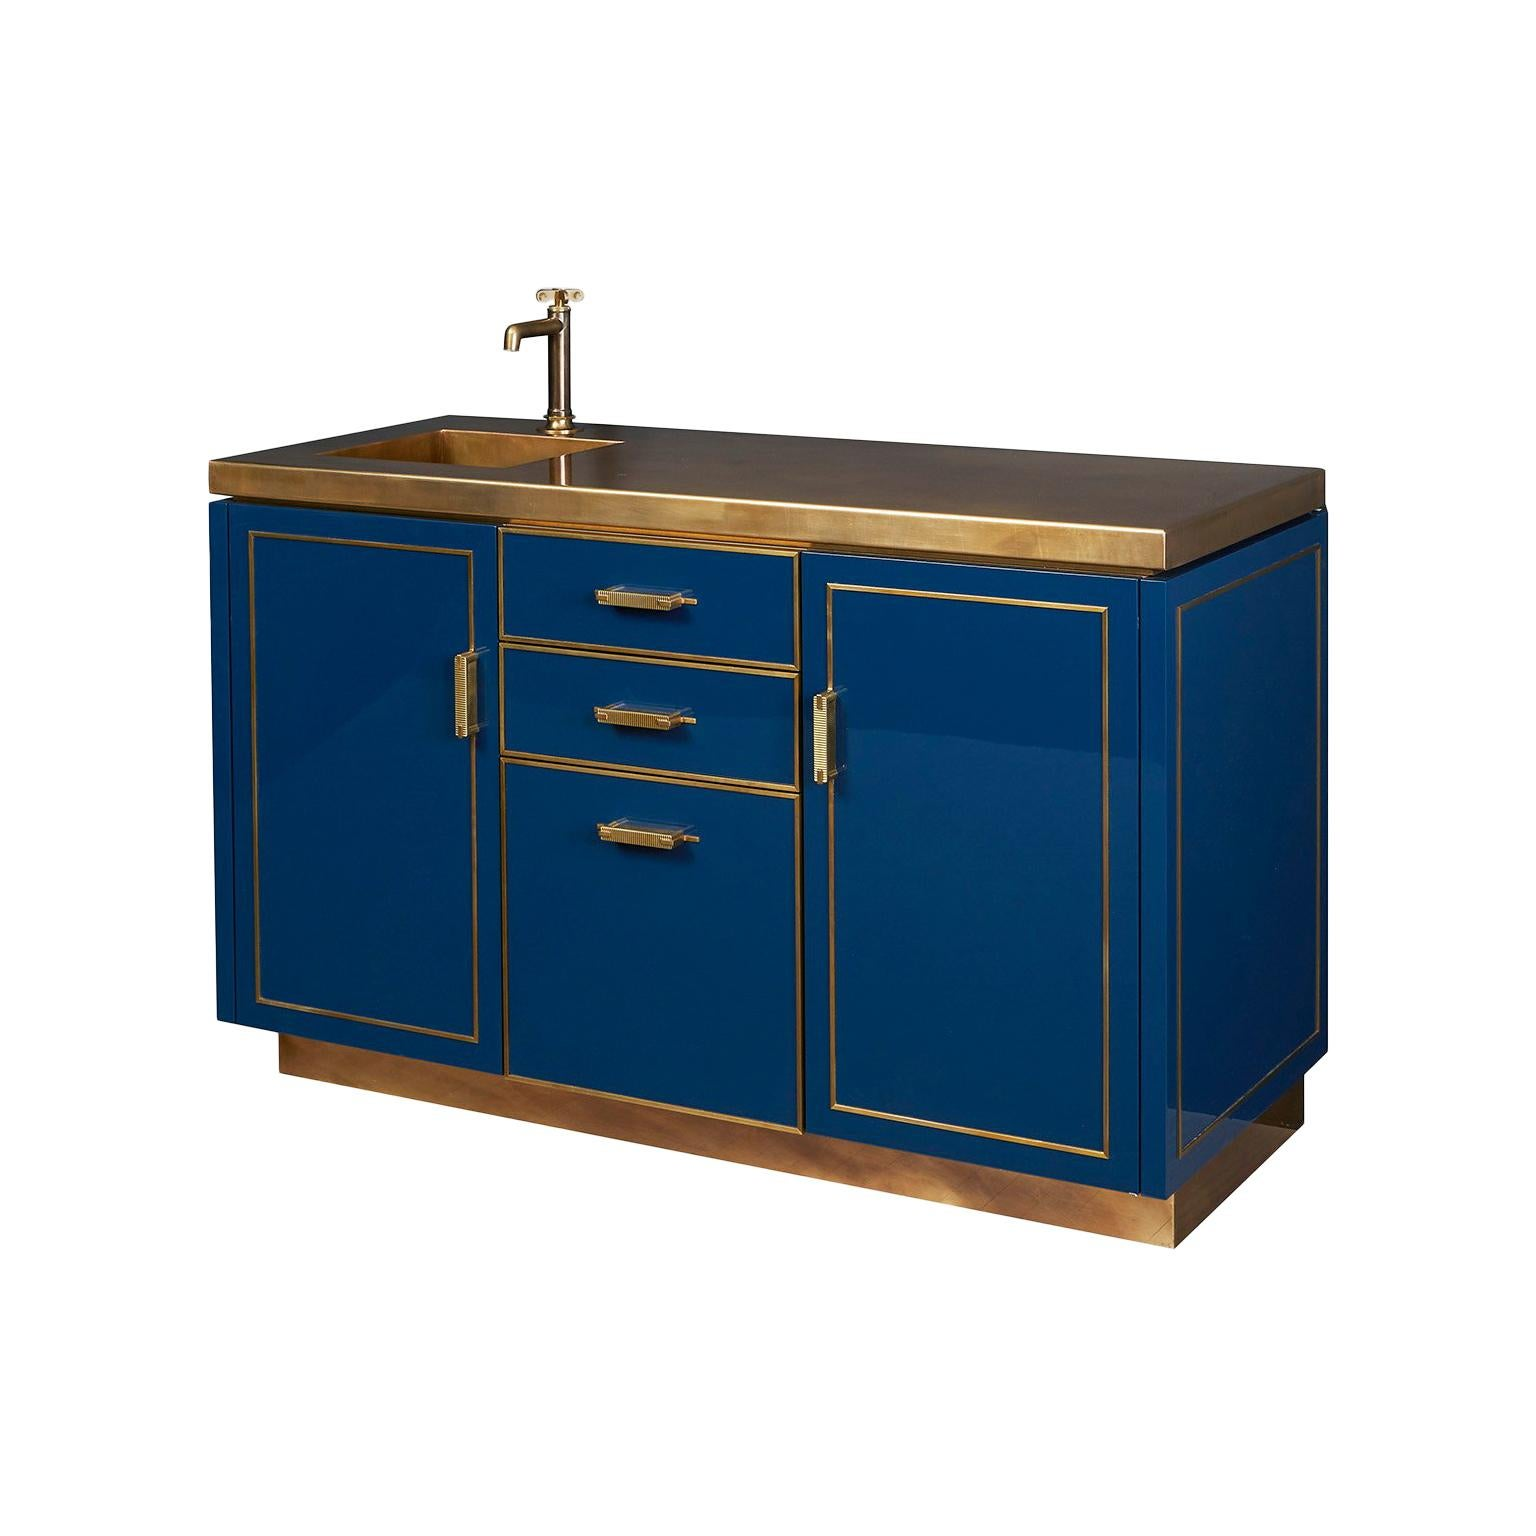 Amuneal's Lacquer Bar Cabinet with Brass Countertop